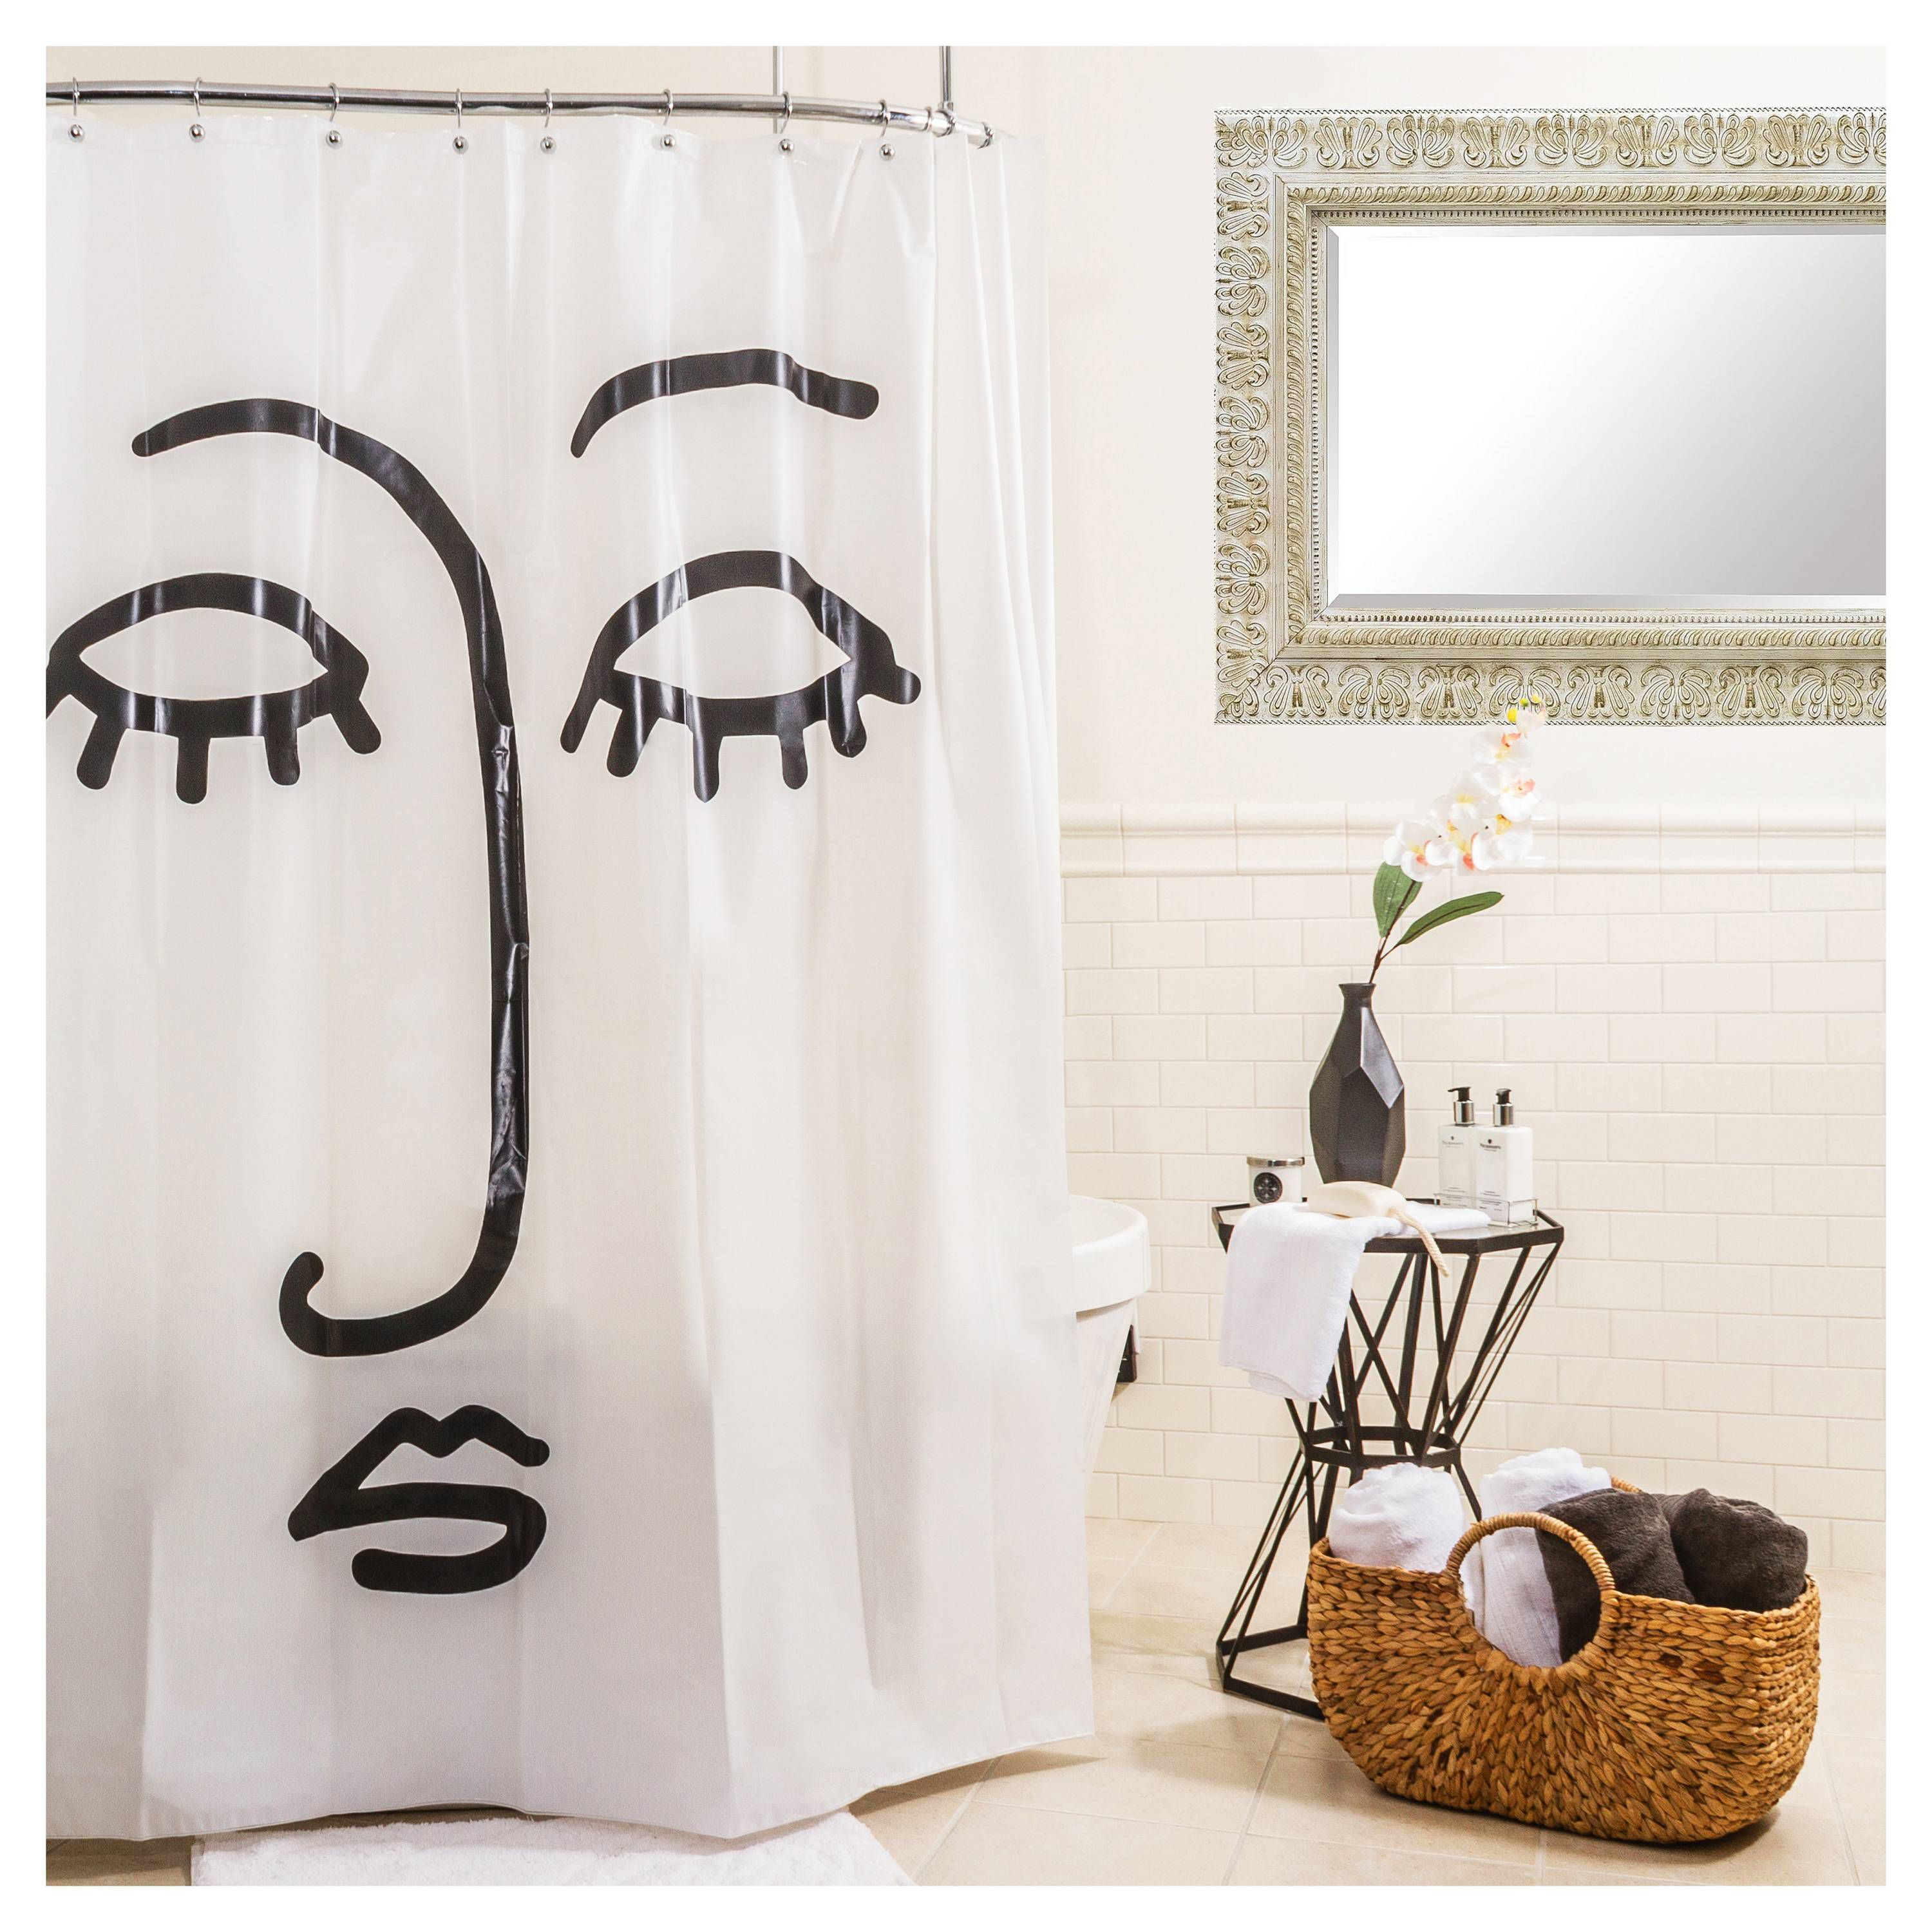 15 Bathroom Shower Curtains for Every Style